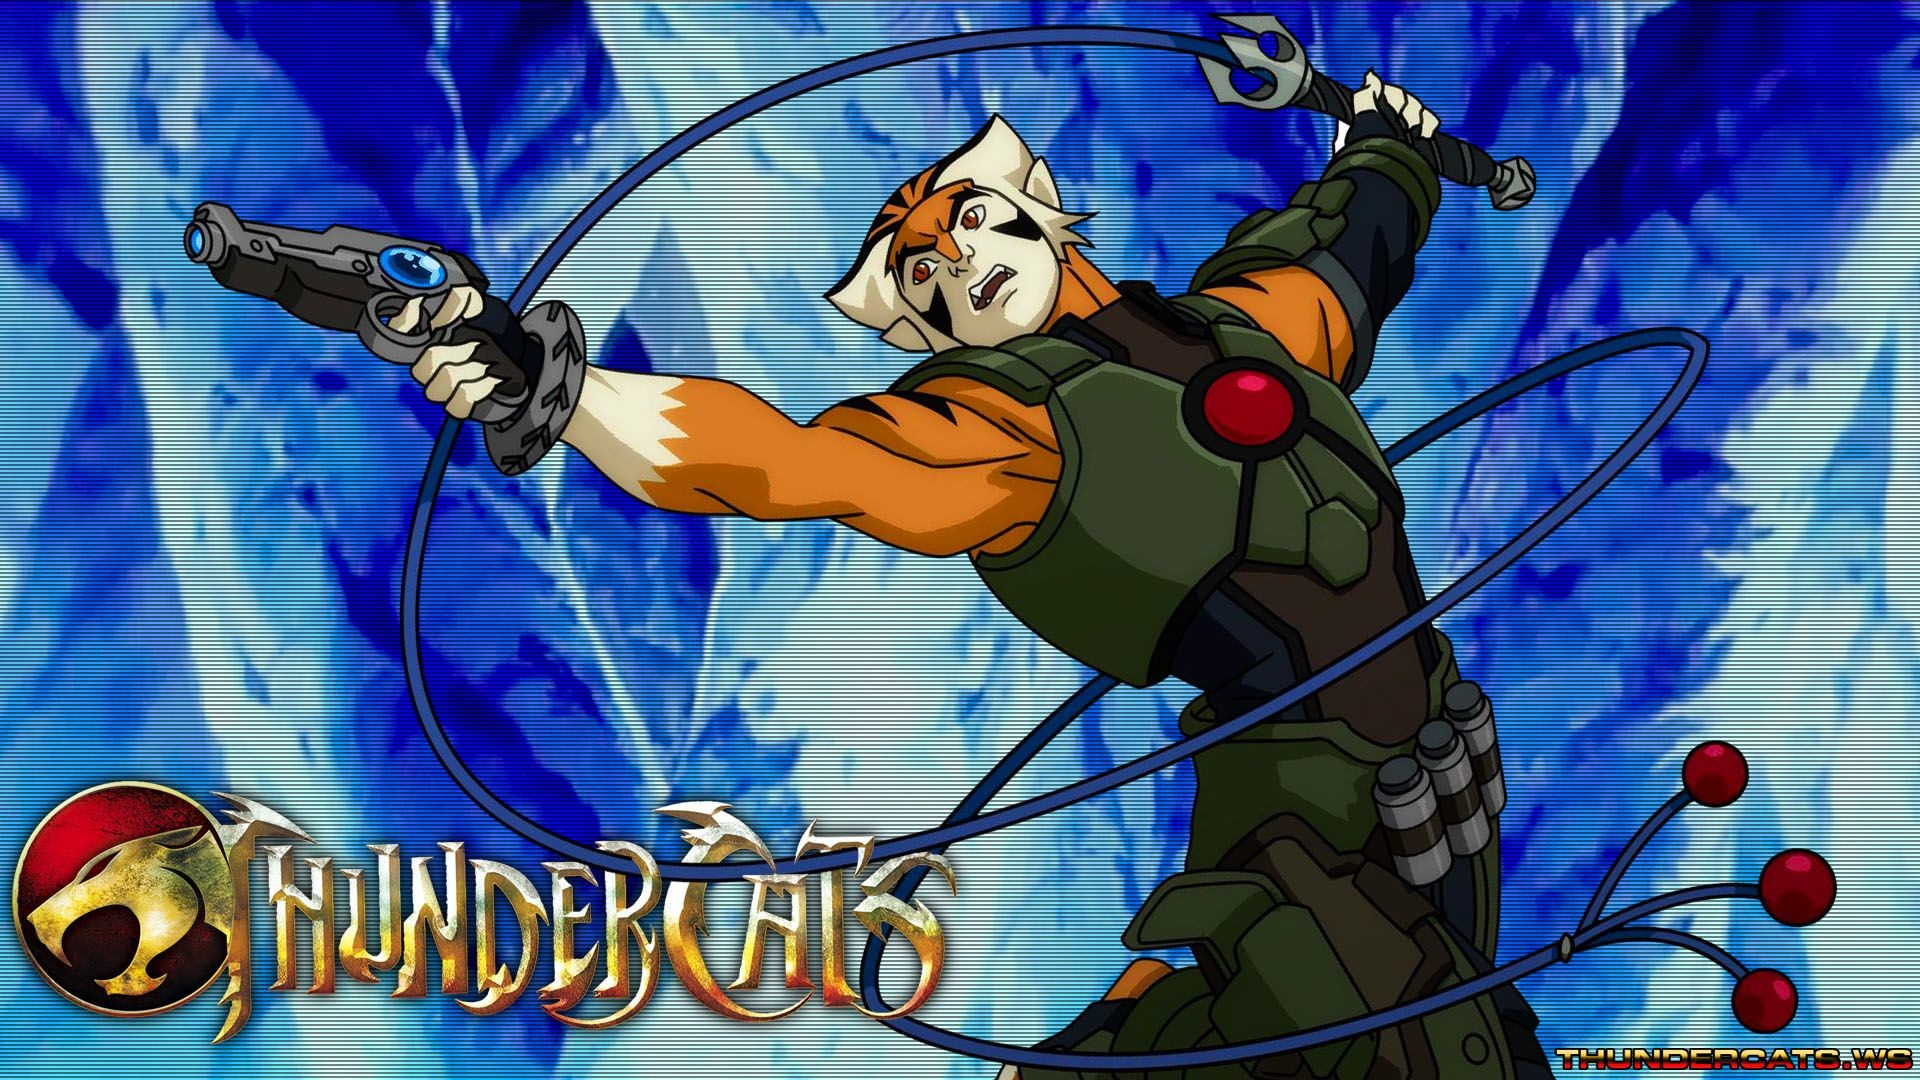 Res: 1920x1080, Thundercats Wallpaper | Thundercats-Wallpaper-7-HD More Thundercats Desktop  Wallpapers .